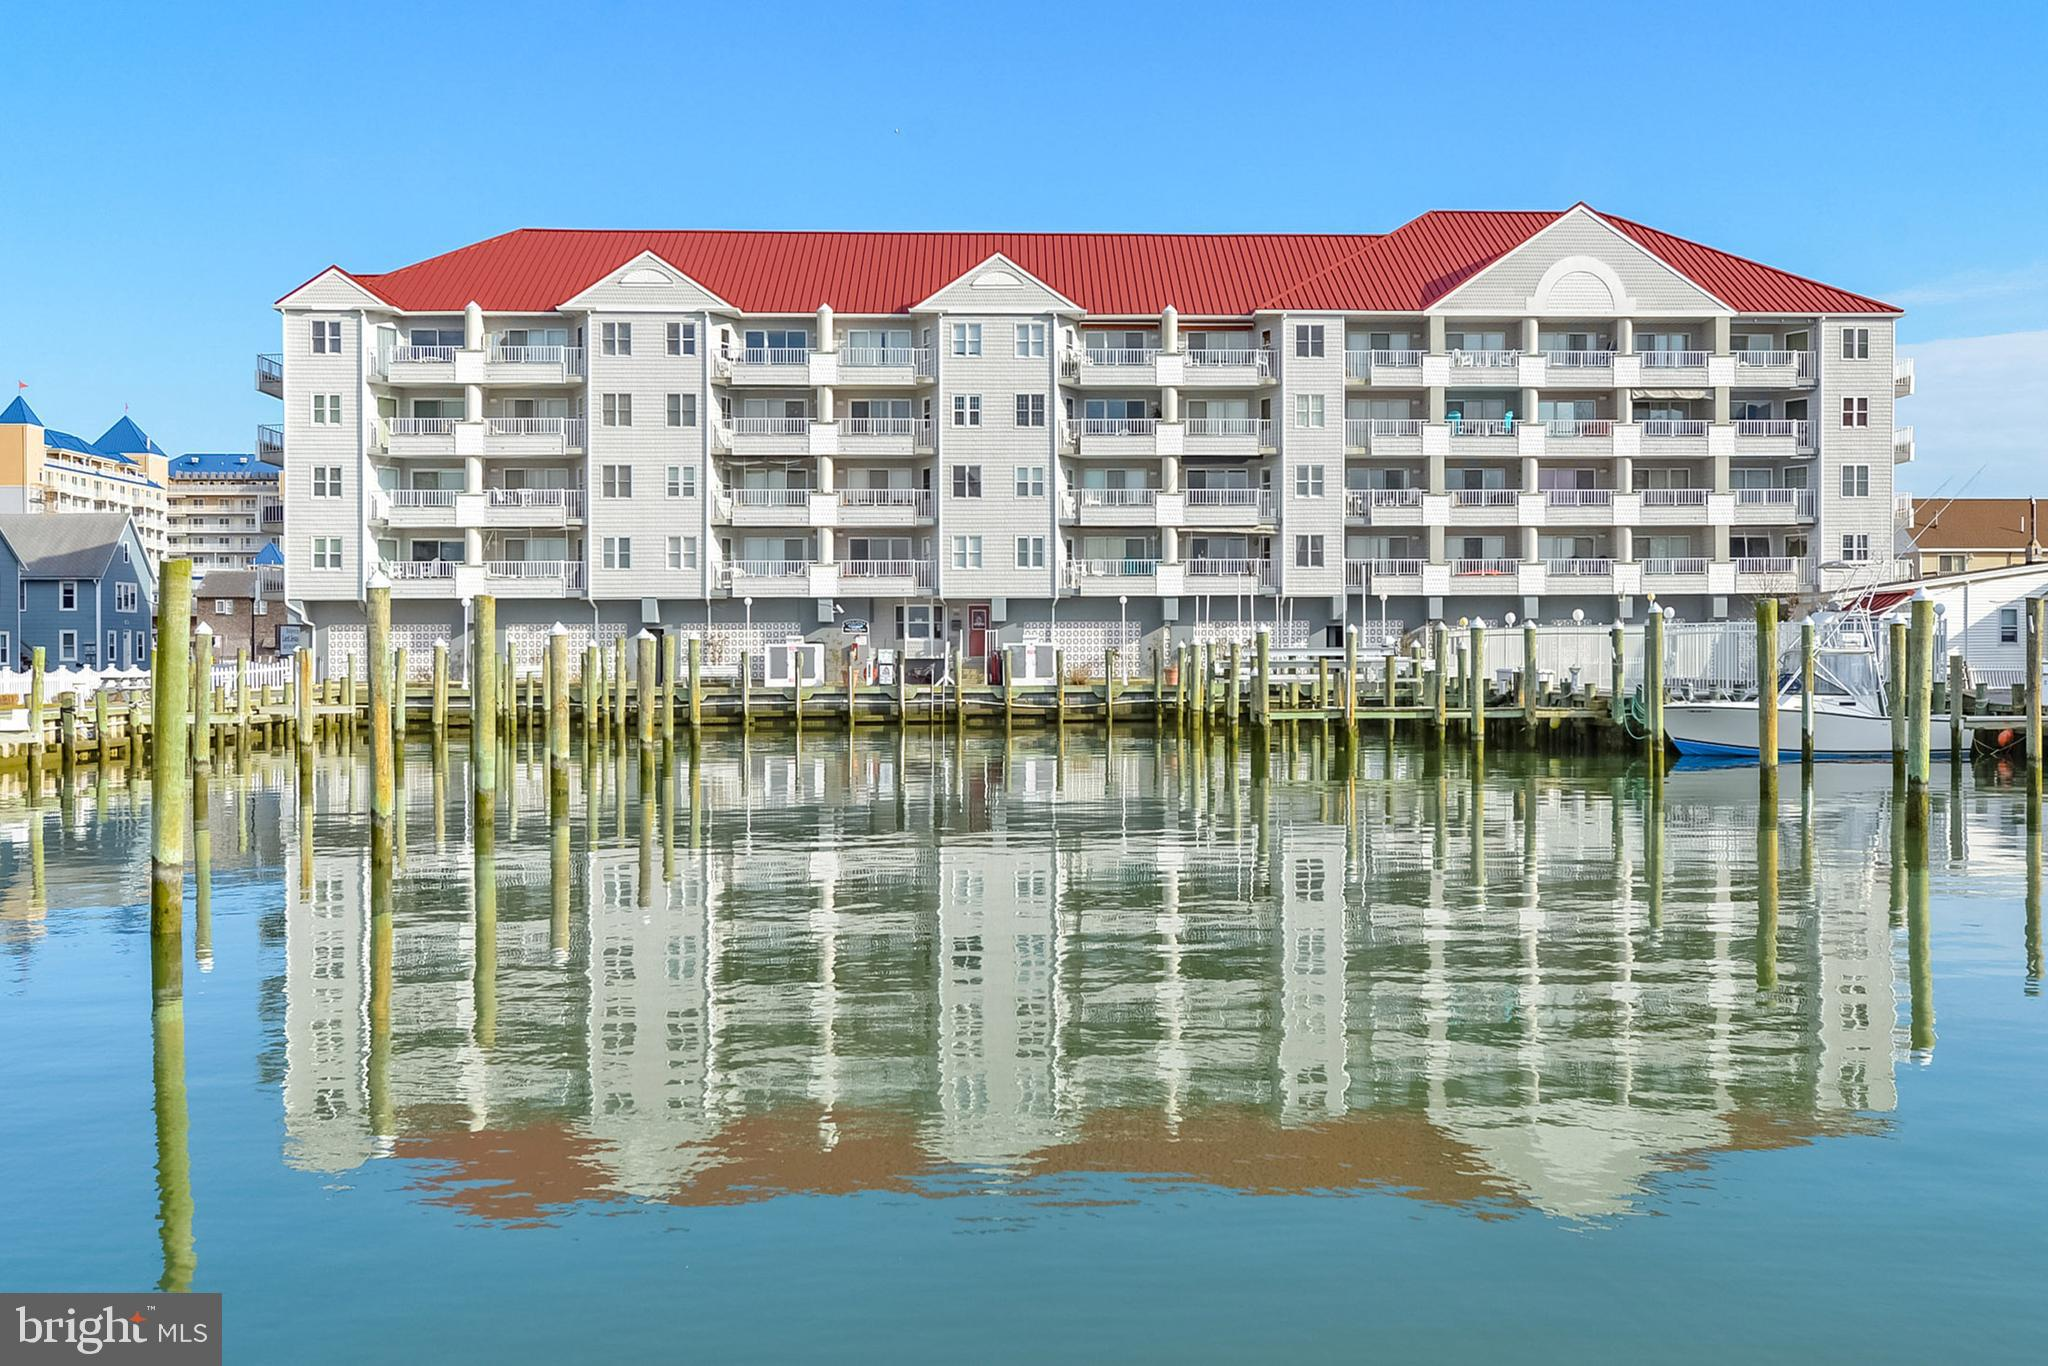 White Marlin #B306 is a lovely condo situated right on the White Marlin Marina in the heart of Downtown Ocean City. As far as location goes, you can't beat this one! The beach, boardwalk, shops, dining, and more are in very close proximity. The condo features two bedrooms, two bathrooms, and an open floor plan with plenty of dining and living space. Step out onto the private balcony overlooking the marina and Assawoman Bay providing fantastic sunset views! Boat slip #29 conveys with this property, dimensions are 65' by 22', perfect for any large boat! Property also features two great assigned parking spaces, one under the building right near the elevator and one oustide right near the pool. Right outside your front door, the White Marlin Marina is not only a great place to dock your boat, it is also a hub for the world-famous White Marlin Open. The community is well maintained and offers an elevator and a bayside, outdoor pool. If you're looking for your own personal boaters paradise or a rental income-producing investment, White Marlin #B306 is a great option for you! Annual gross rental income around $29,000.